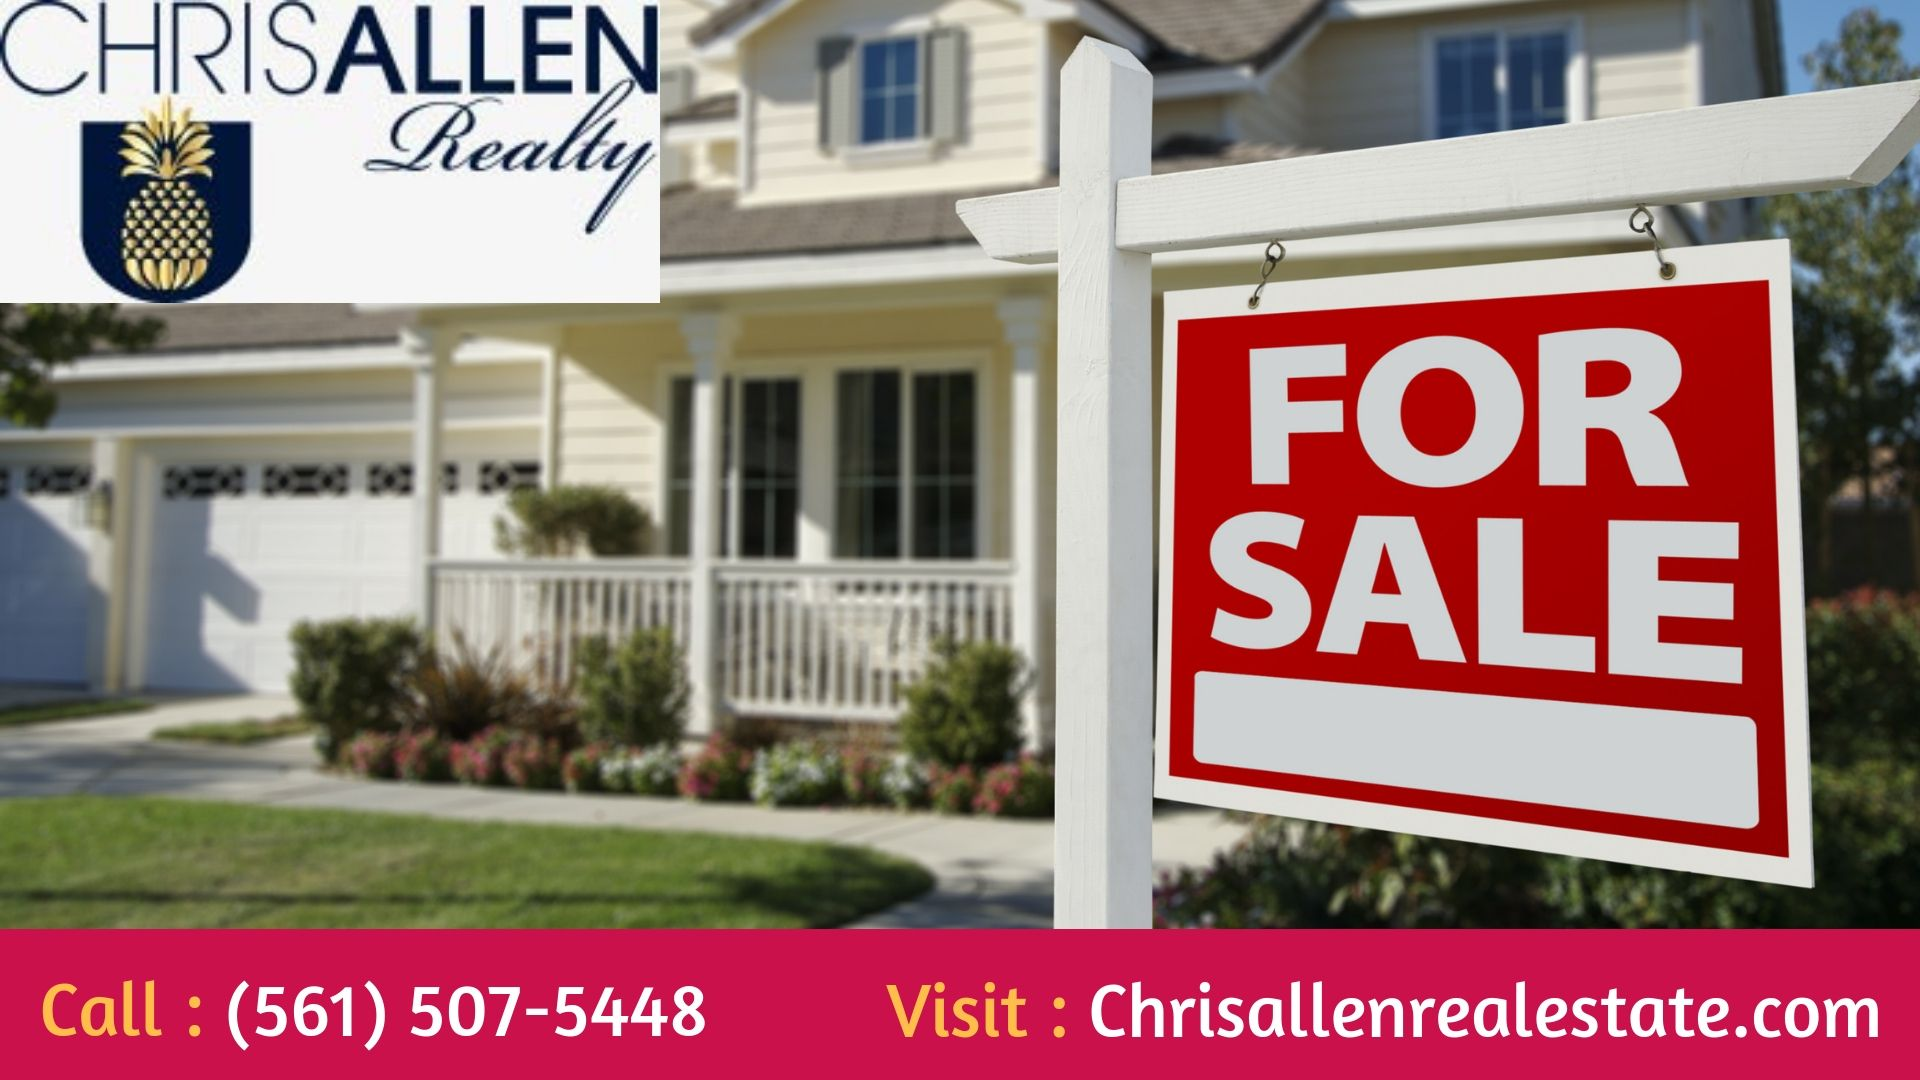 Get Your Perfect Home With The Best Price New Homes Gated Community Dreaming Of You